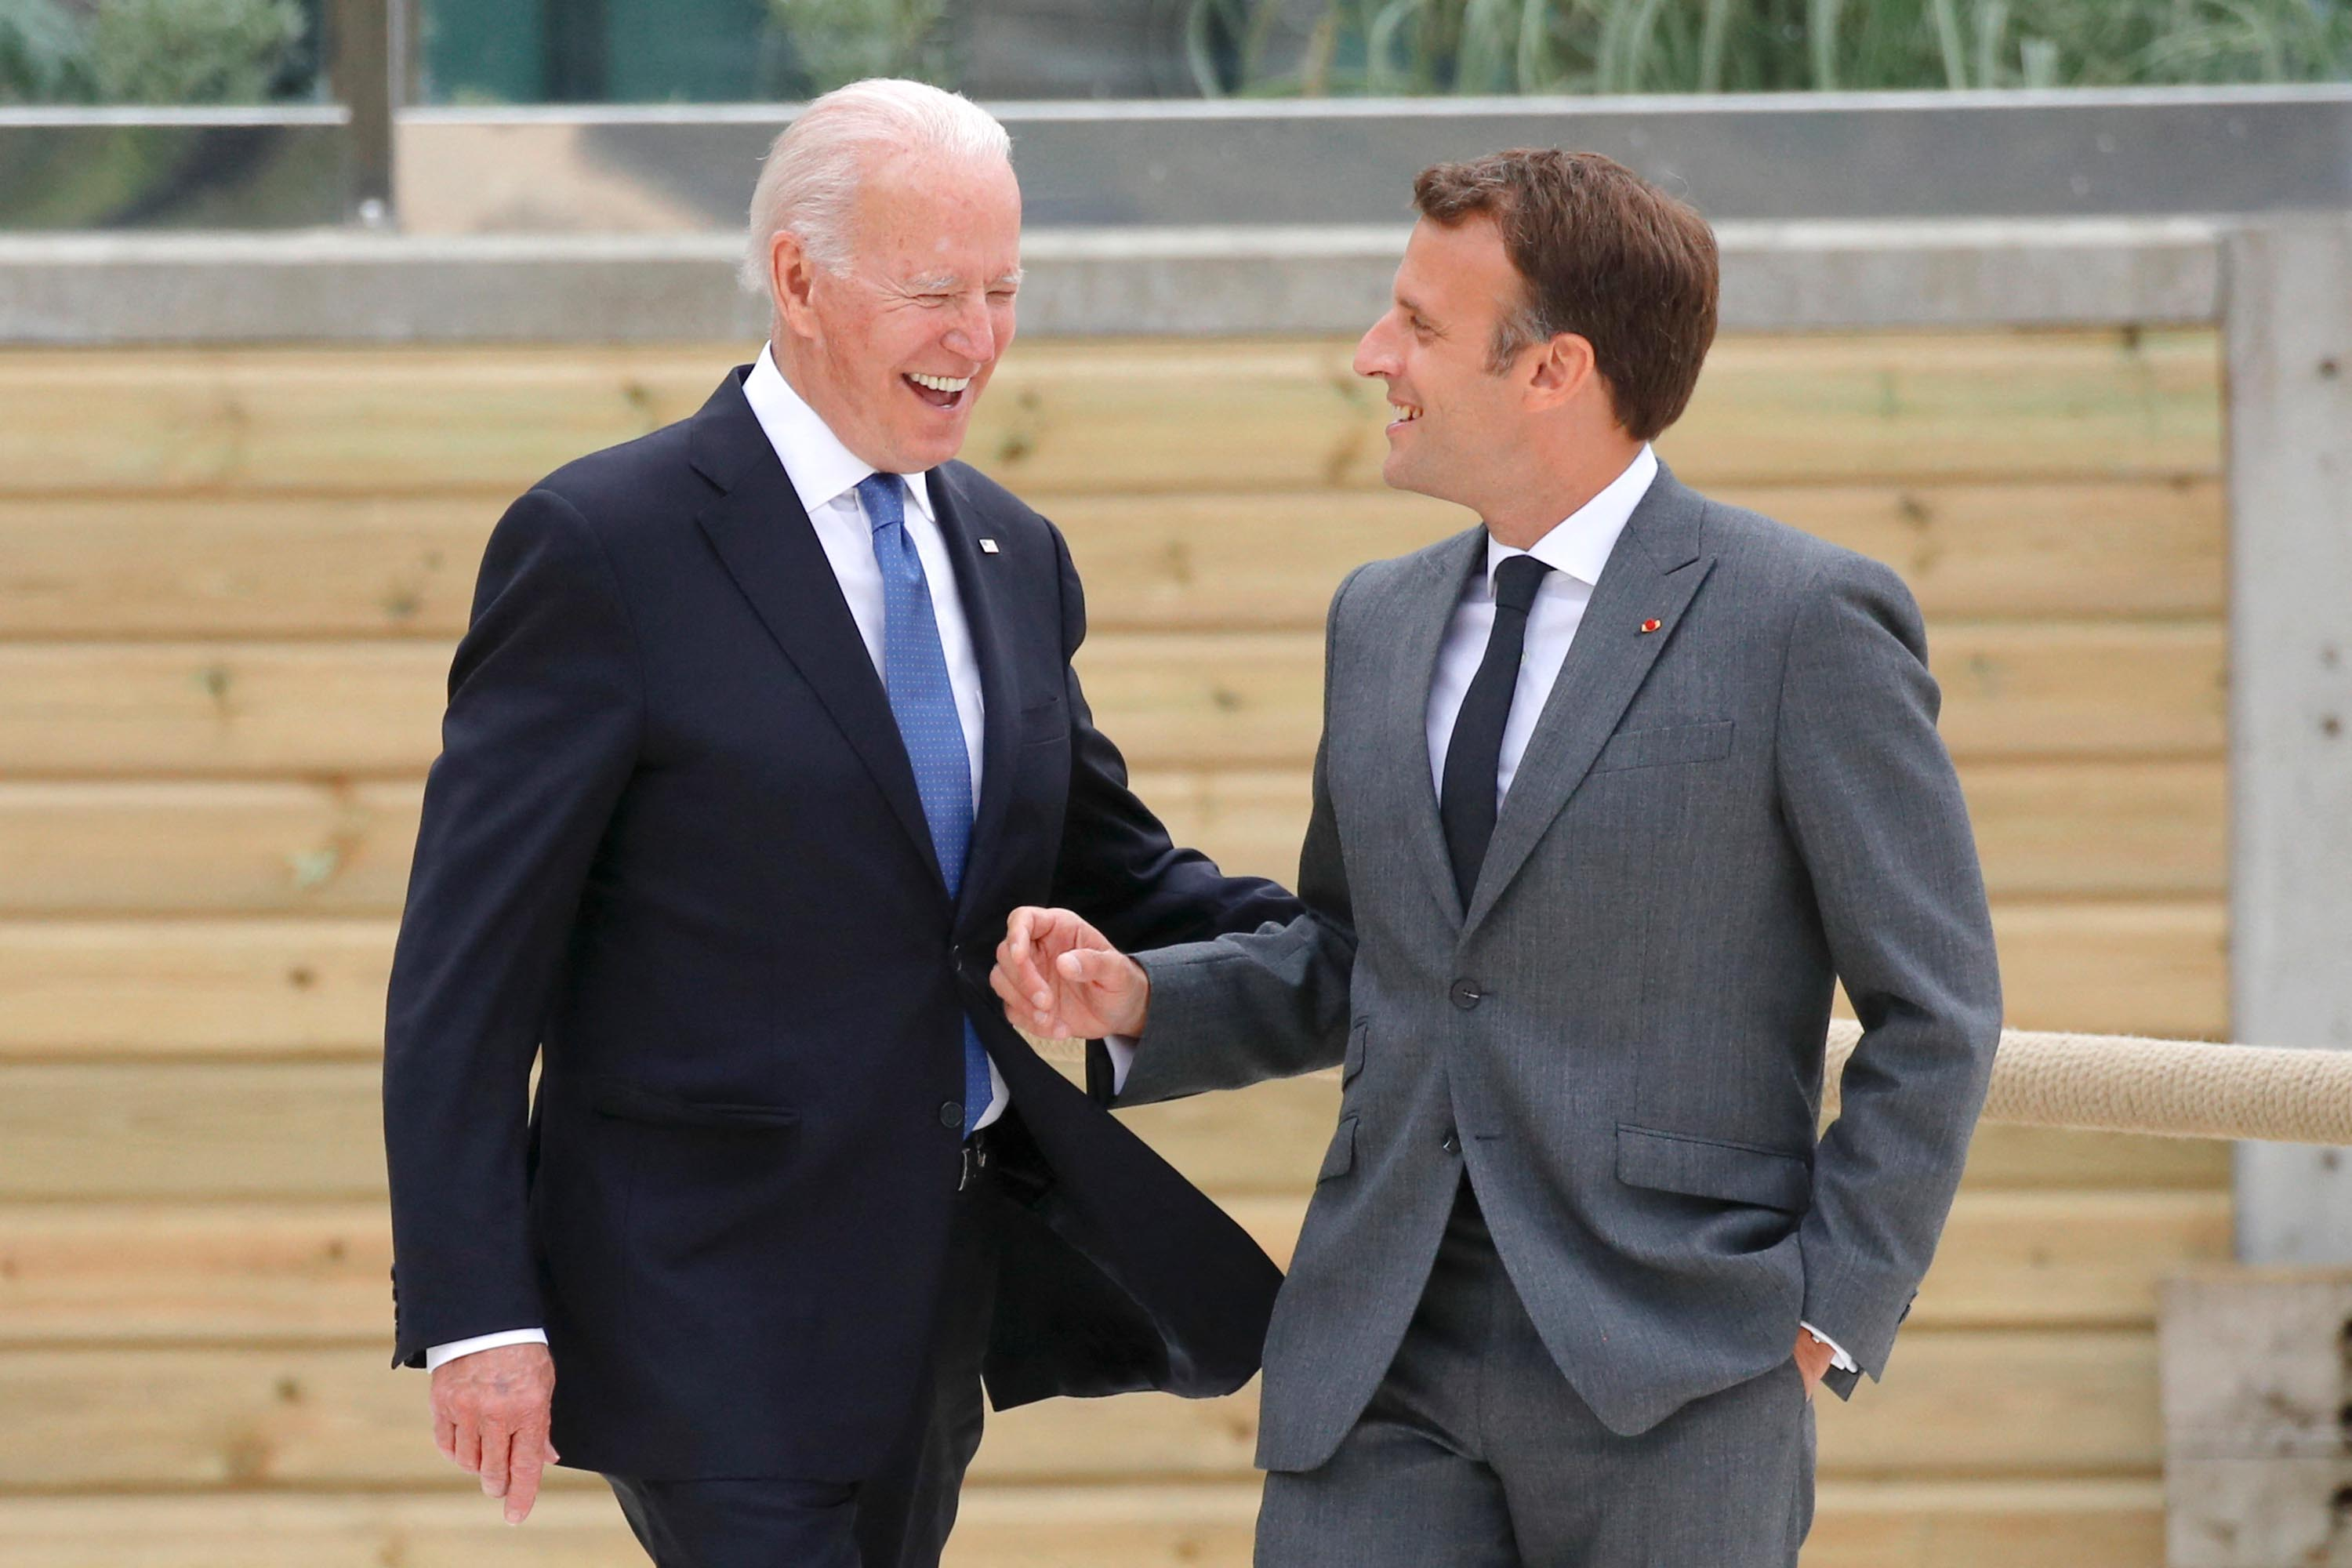 Biden aims to counter China's global infrastructure project with new G7 initiative